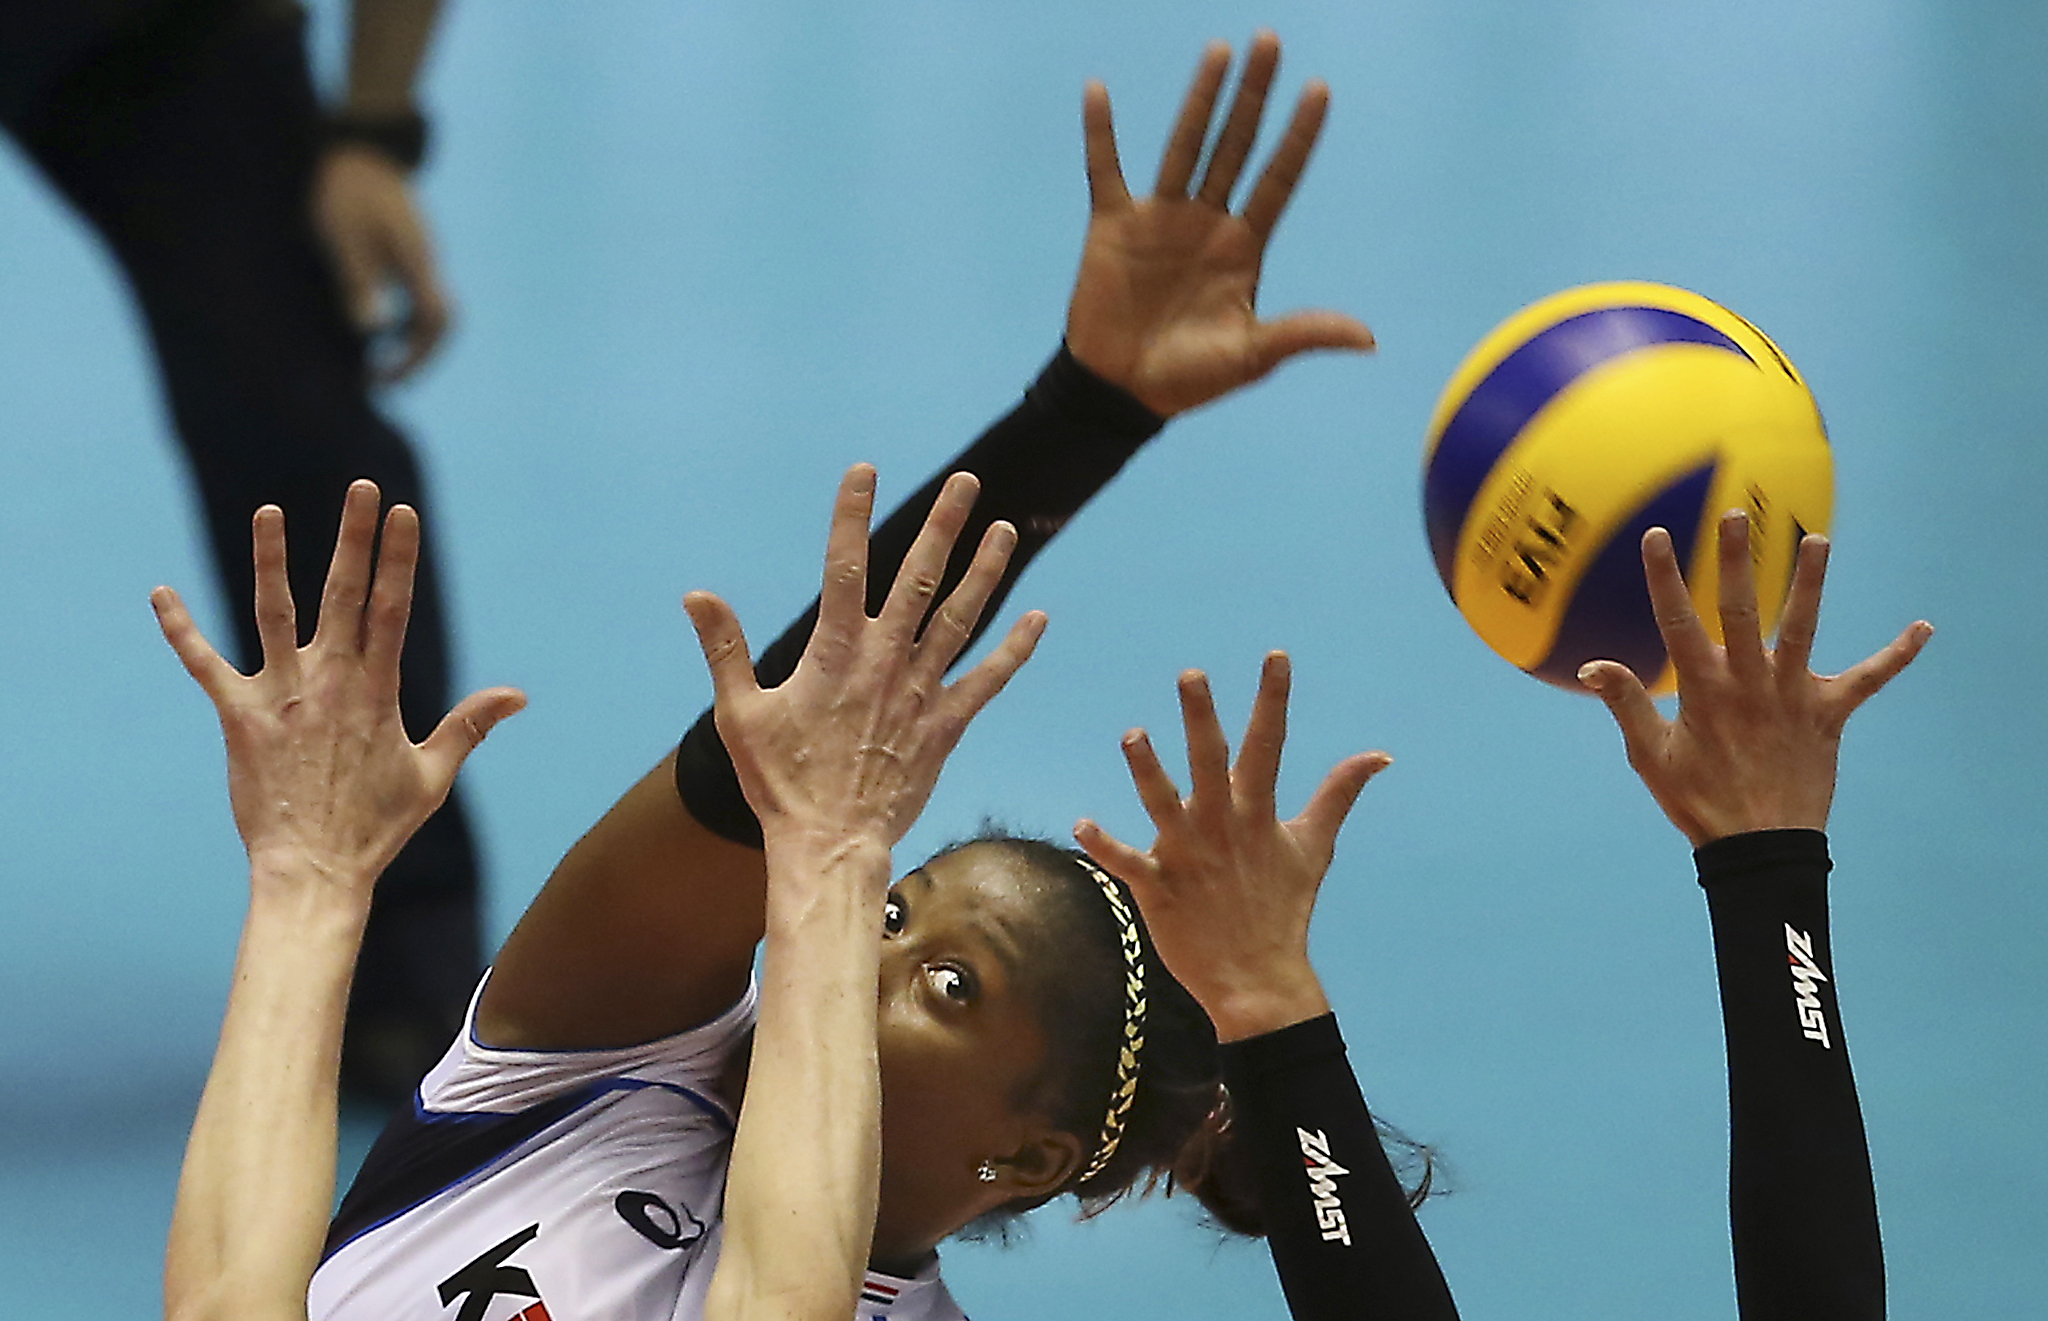 Miriam Fatime Sylla of Italy spikes the ball against Netherland during their Women's Volleyball World Olympic qualification tournament in Tokyo, Japan, Friday, May 20, 2016. (AP Photo/Koji Sasahara)